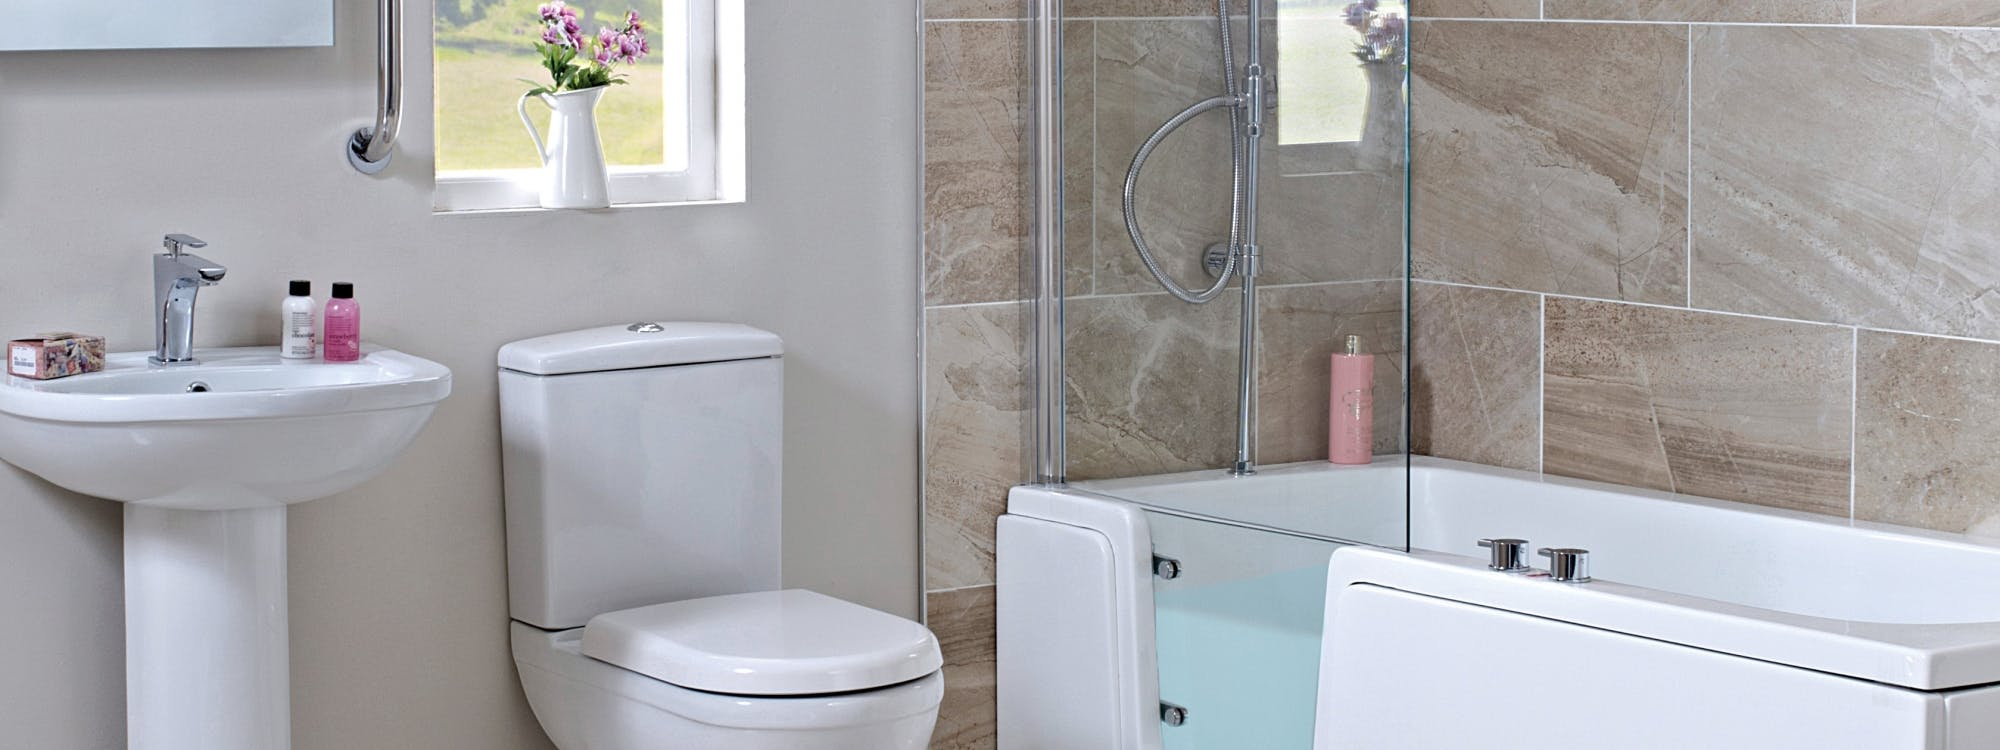 Stylish & accessible bathroom solutions - designed, supplied & installed